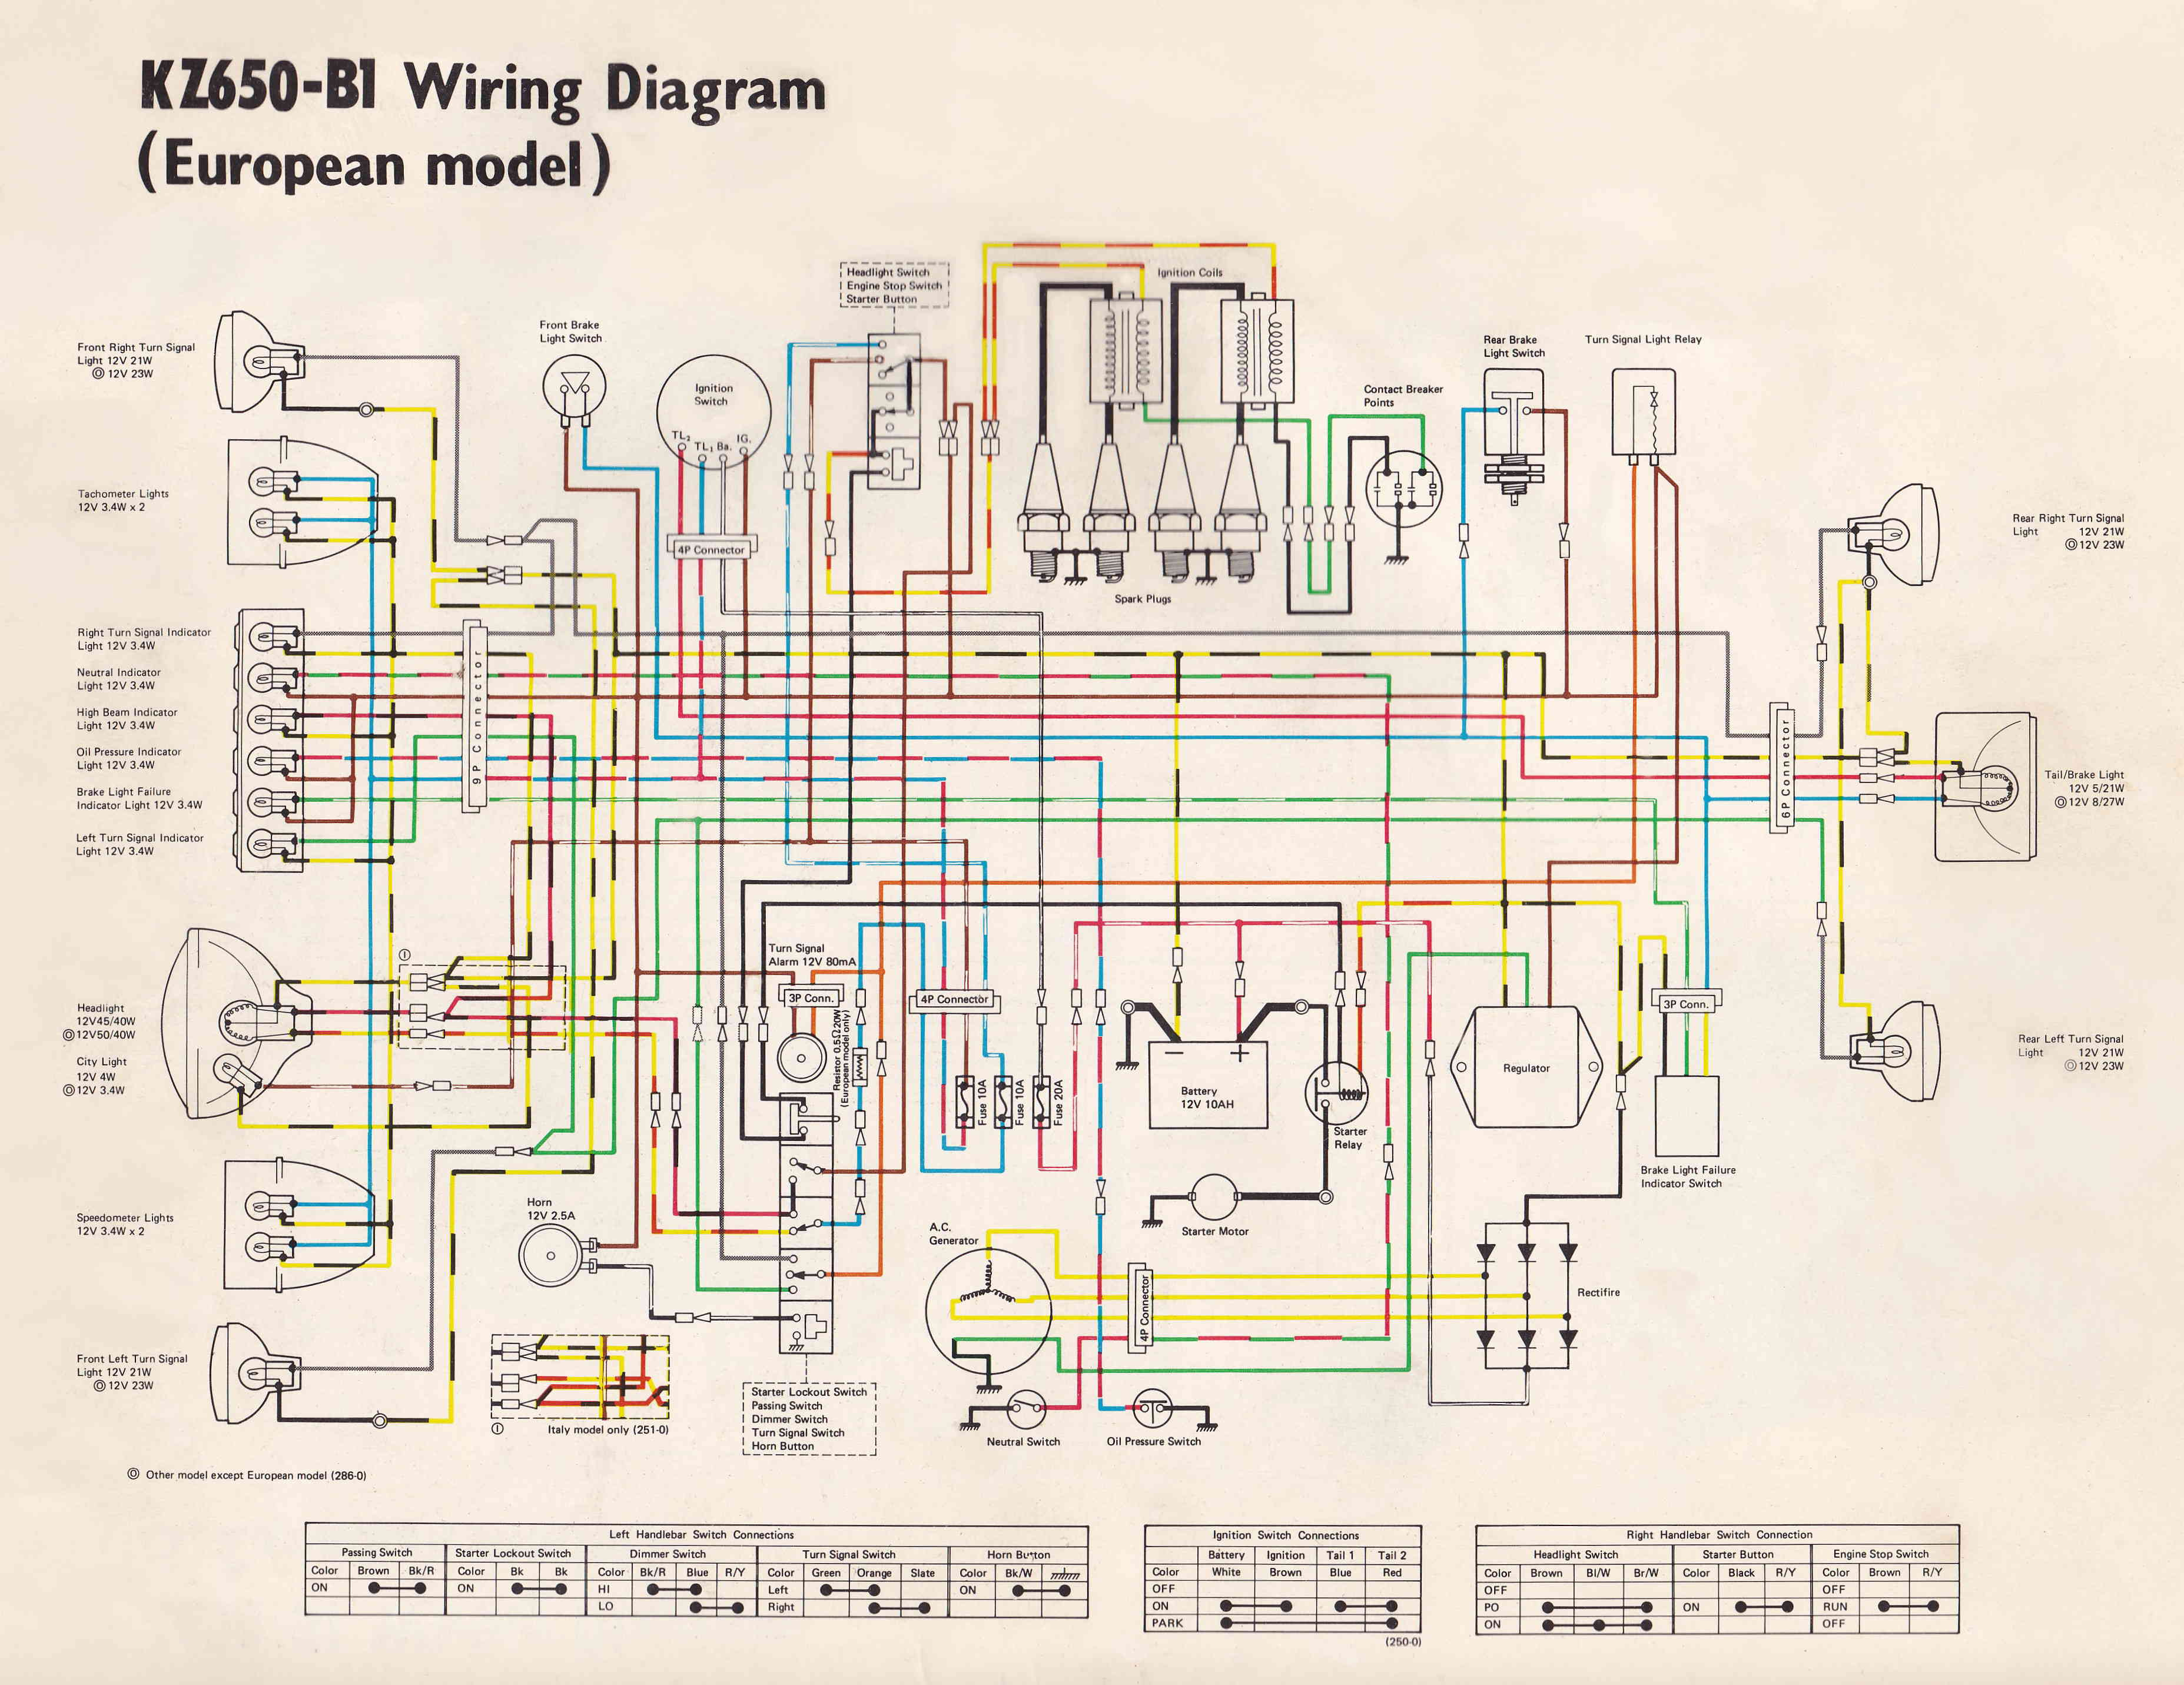 1978 z650 wiring diagram of the earths layers kawasaki b1 rolerix